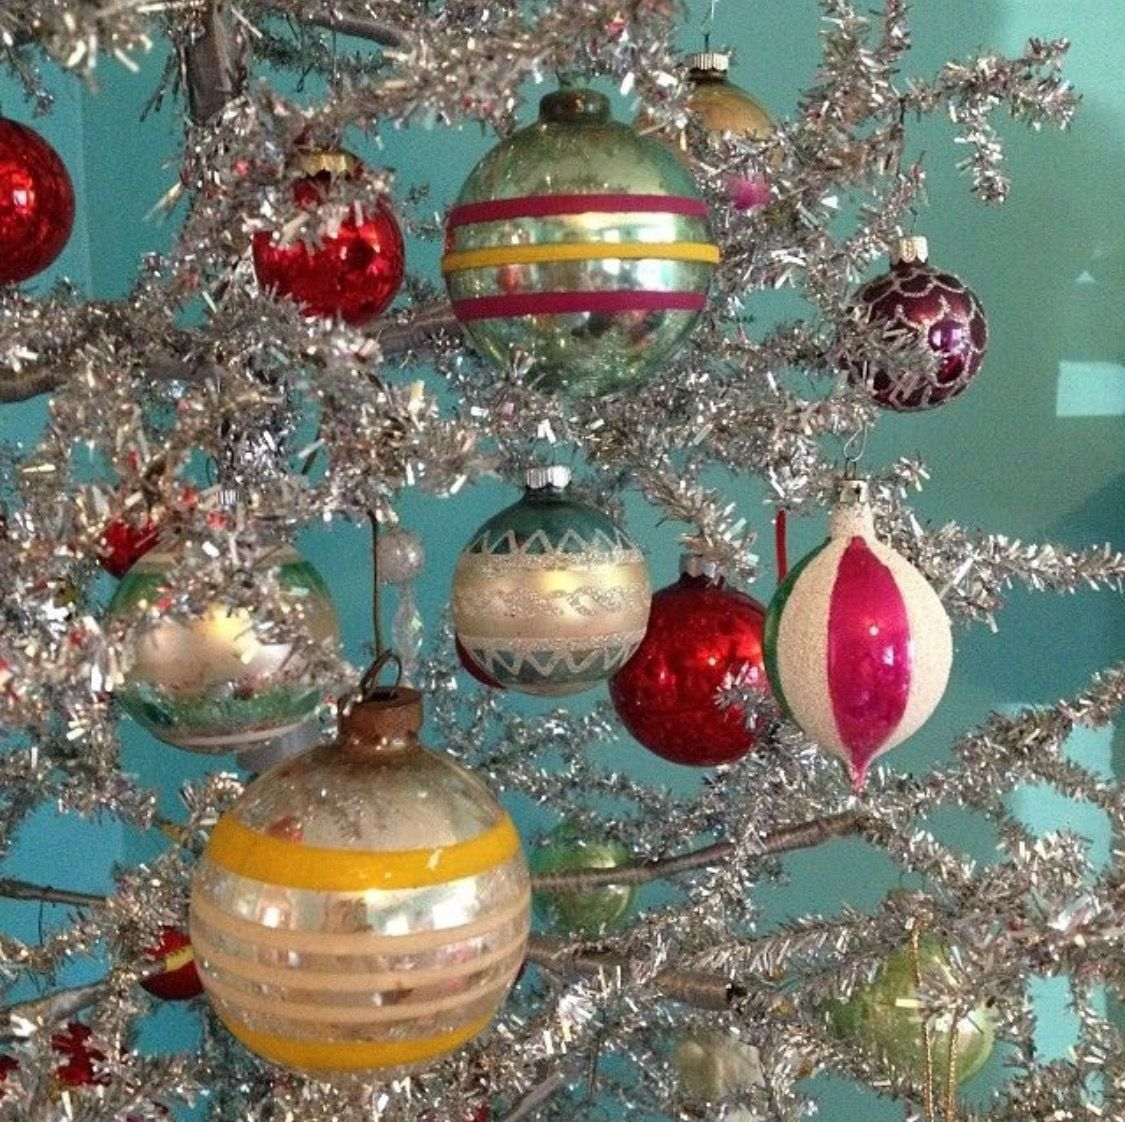 Vintage Christmas | Vintage Glass Ornaments in 2018 | Pinterest ...